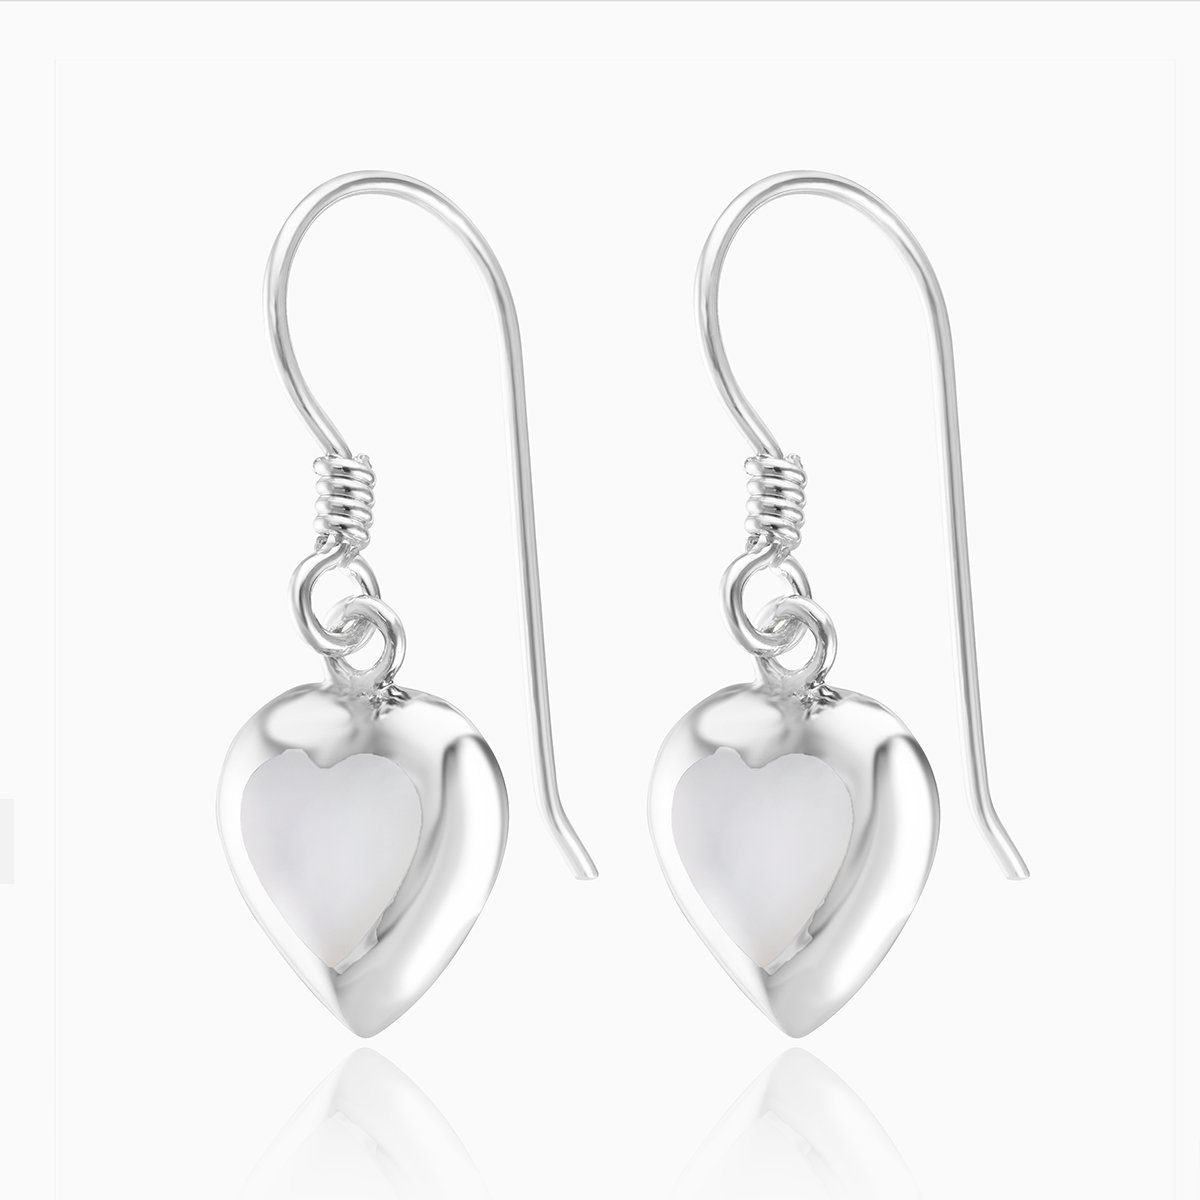 Product title: Mother of Pearl Drop Heart Earrings, product type: Earring